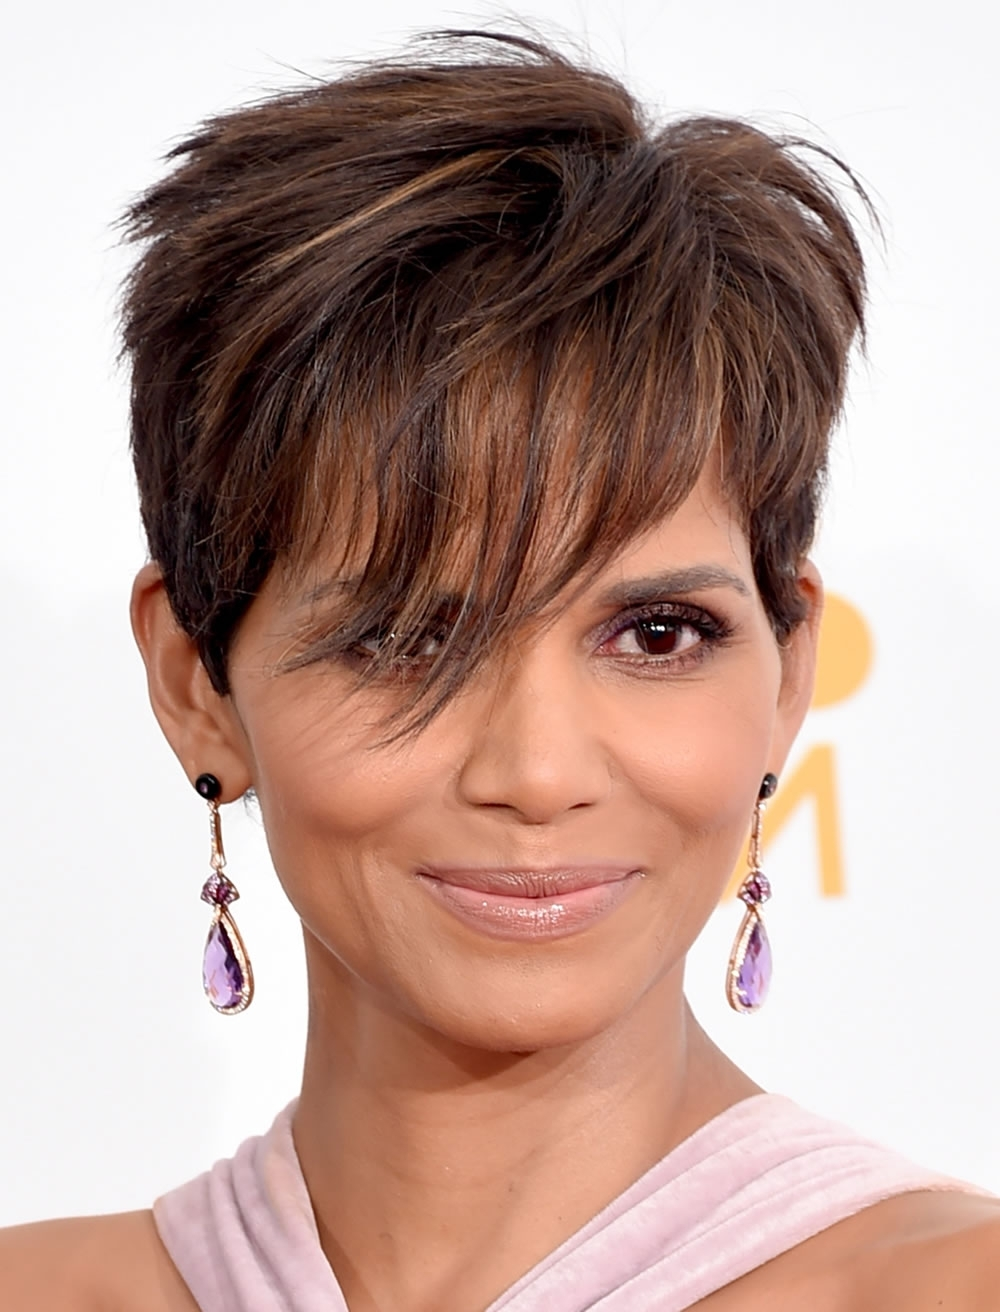 2018 Pixie Hairstyles And Haircuts For Women Over 40 To 60   Page Regarding Recent Pixie Hairstyles For Women Over (View 8 of 15)